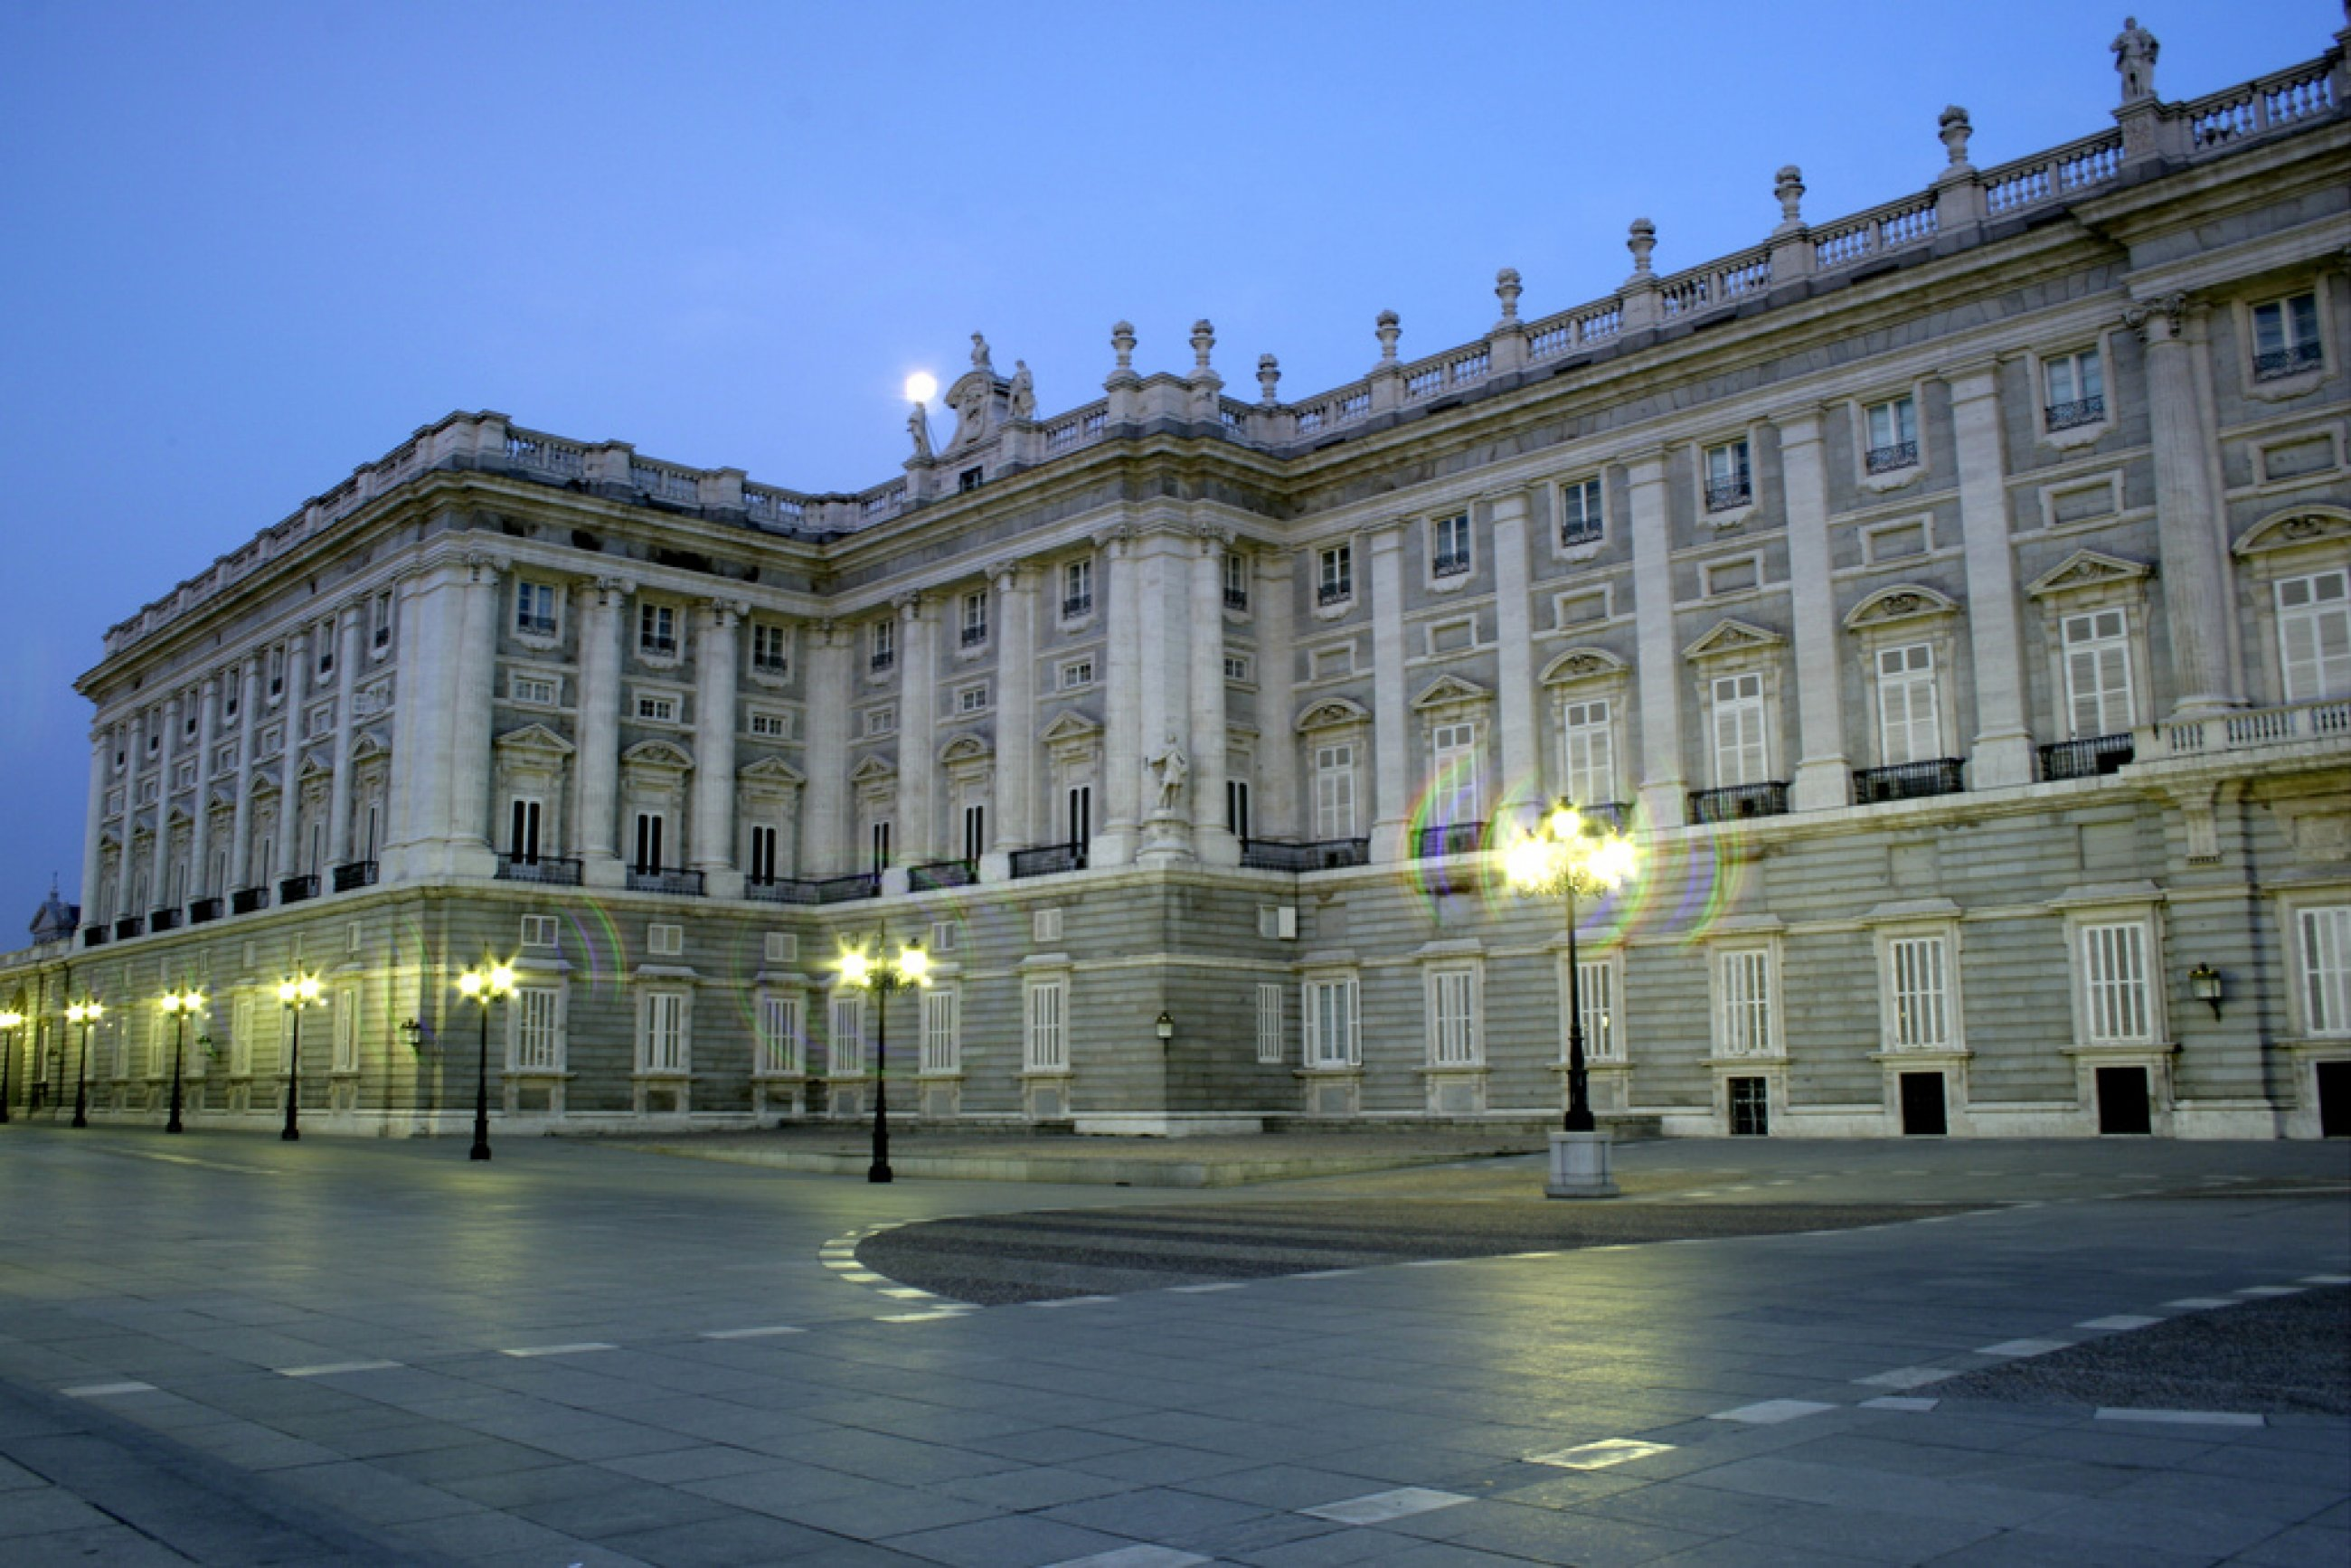 https://bubo.sk/uploads/galleries/7351/fachada-del-palacio-real.-plaza-de-oriente.jpg